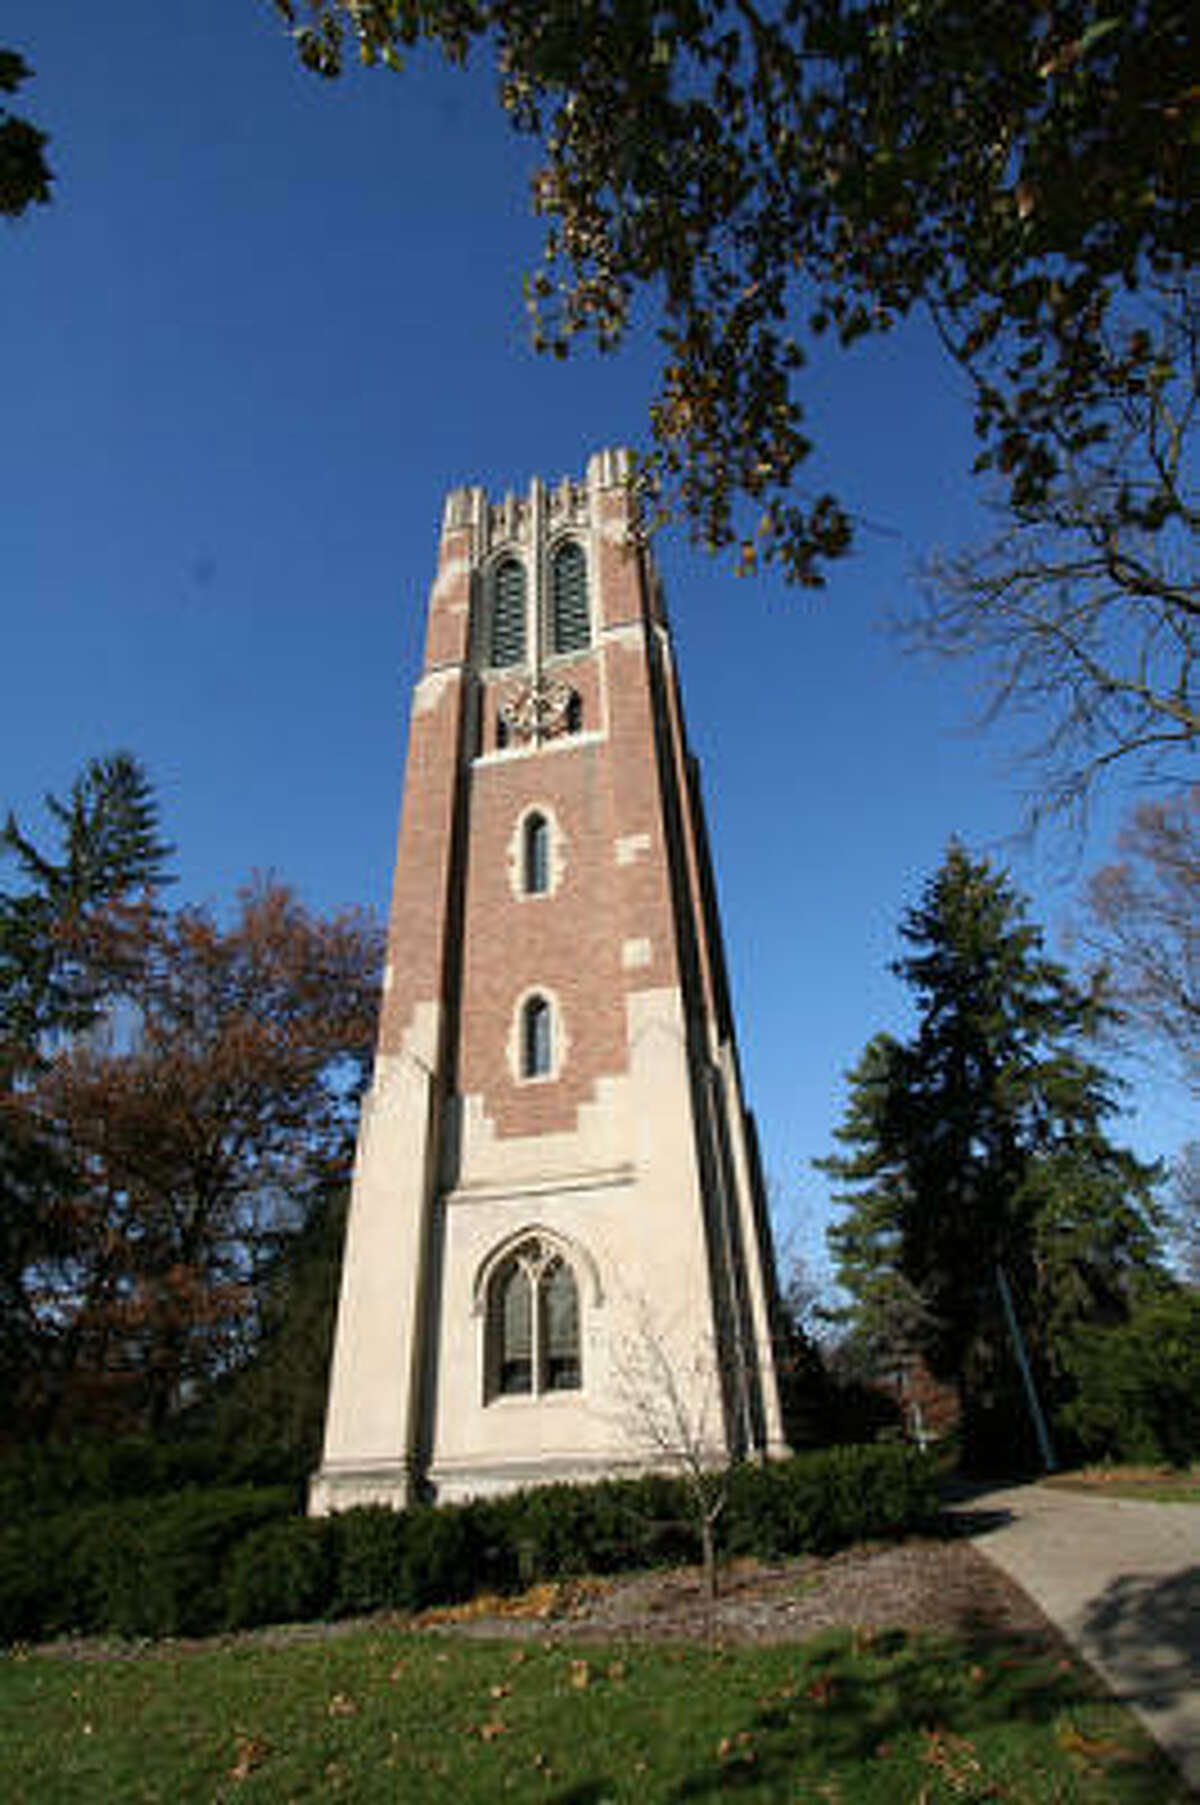 School: Michigan State University Population: 37,454 Source: US News